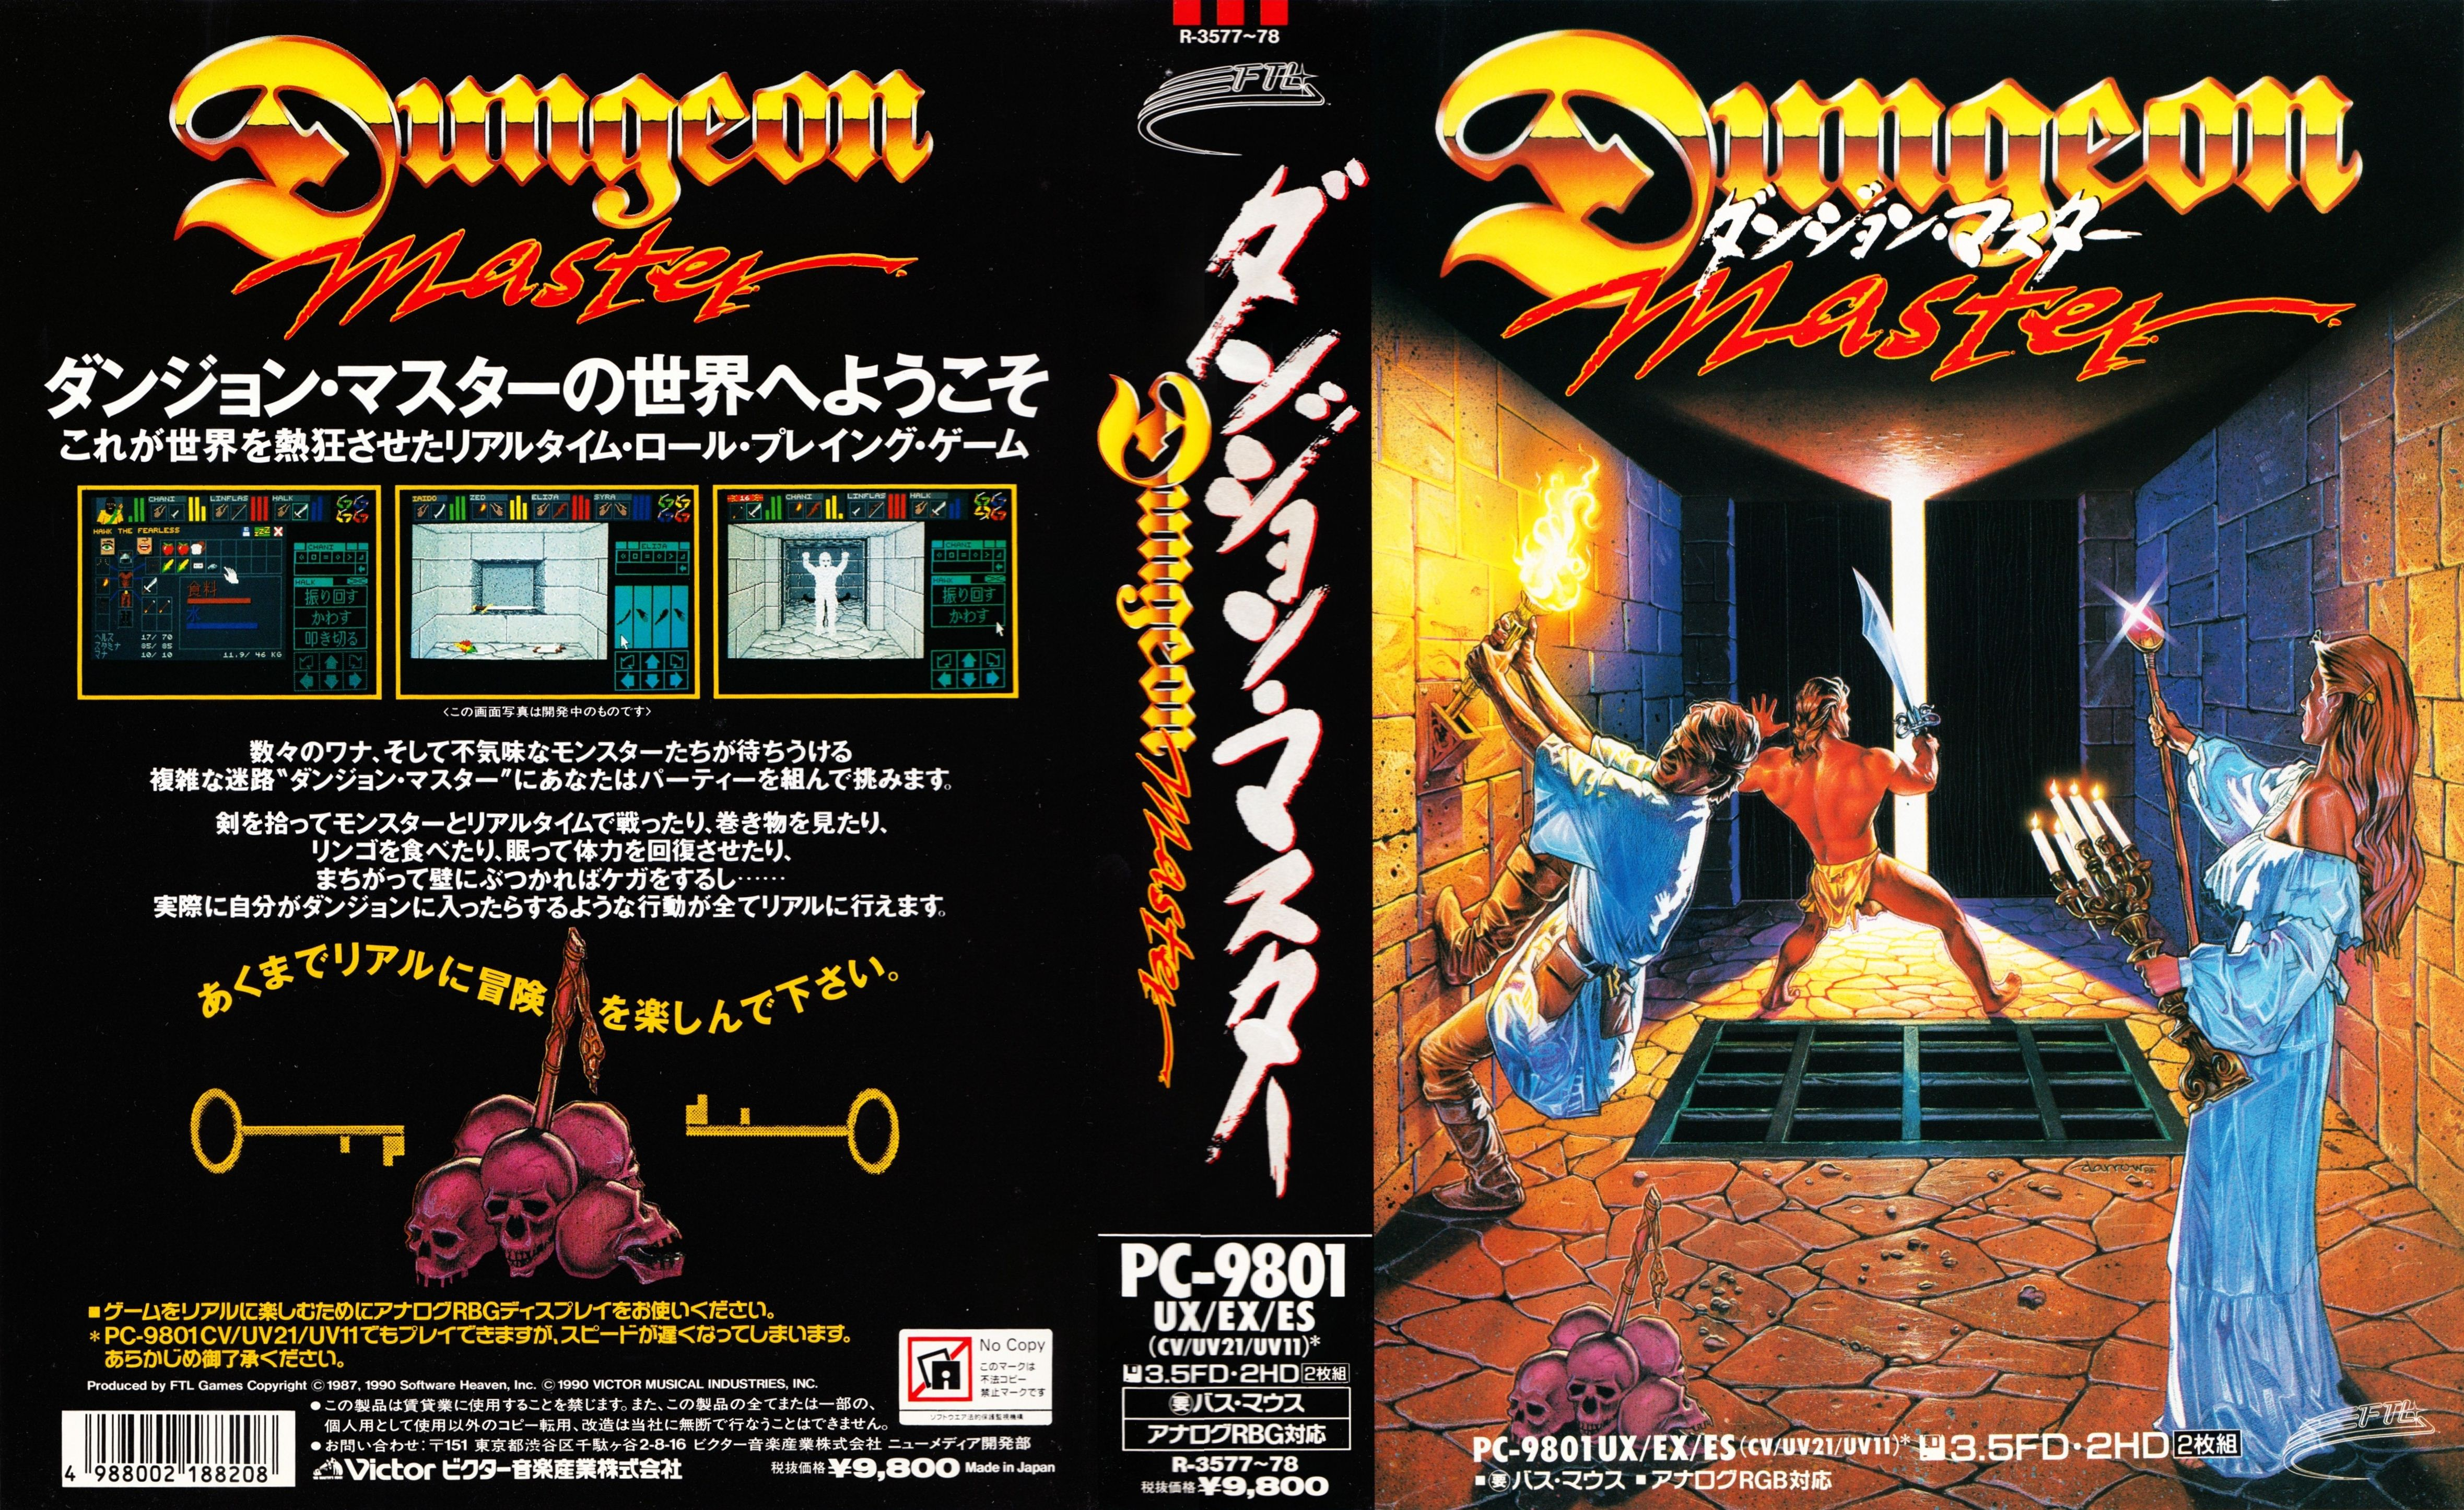 Game - Dungeon Master - JP - PC-9801 - 3.5-inch - Cover - Front - Scan